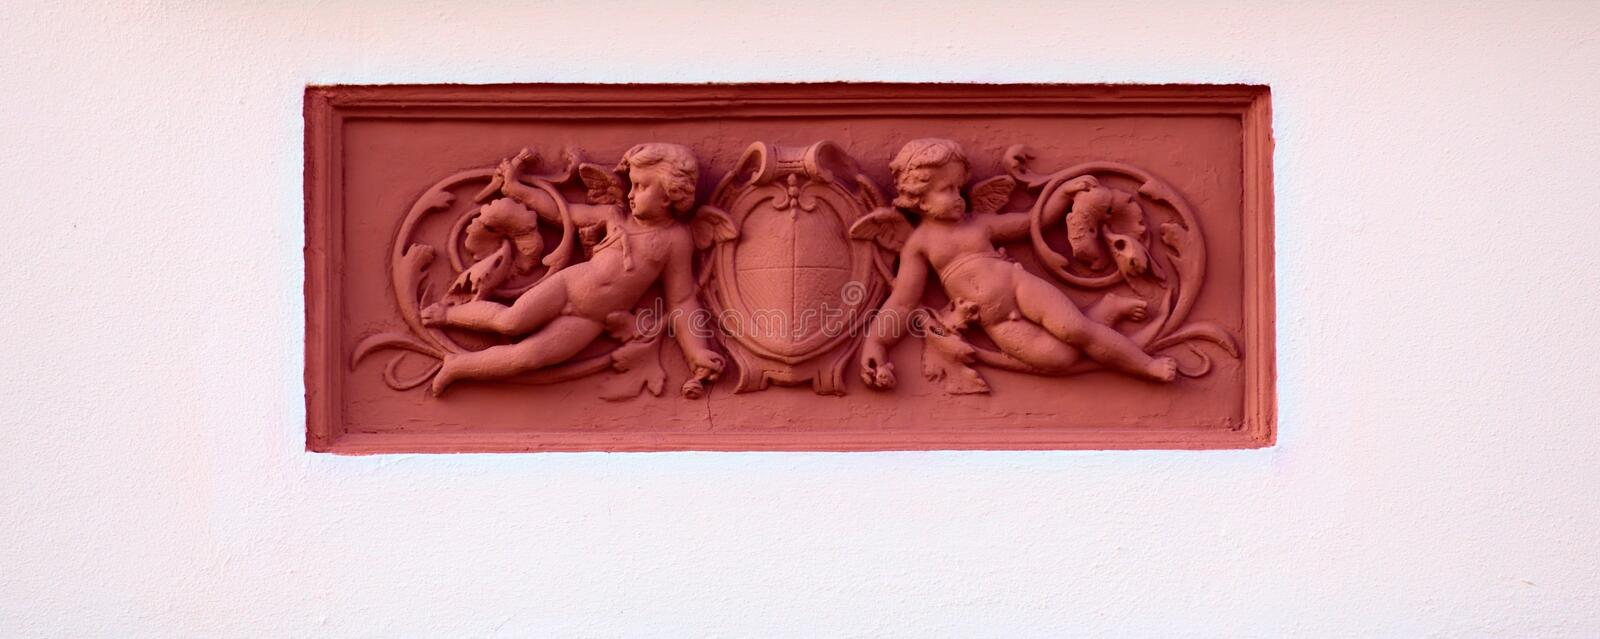 Ornaments with putti on a historic house from 1888 in Greifswald, Germany.  royalty free stock photo